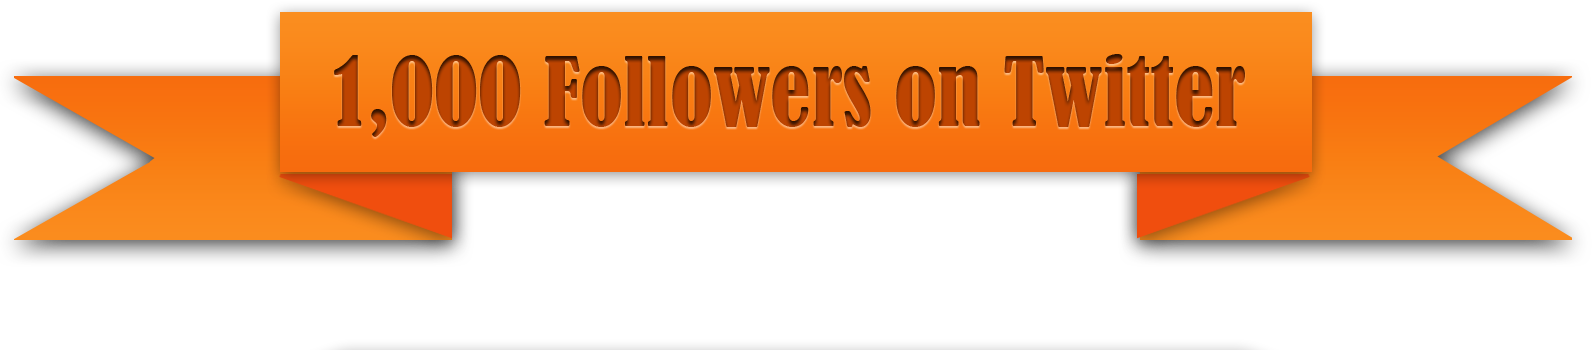 How To Get 1K Followers on Twitter FAST - Click Finders